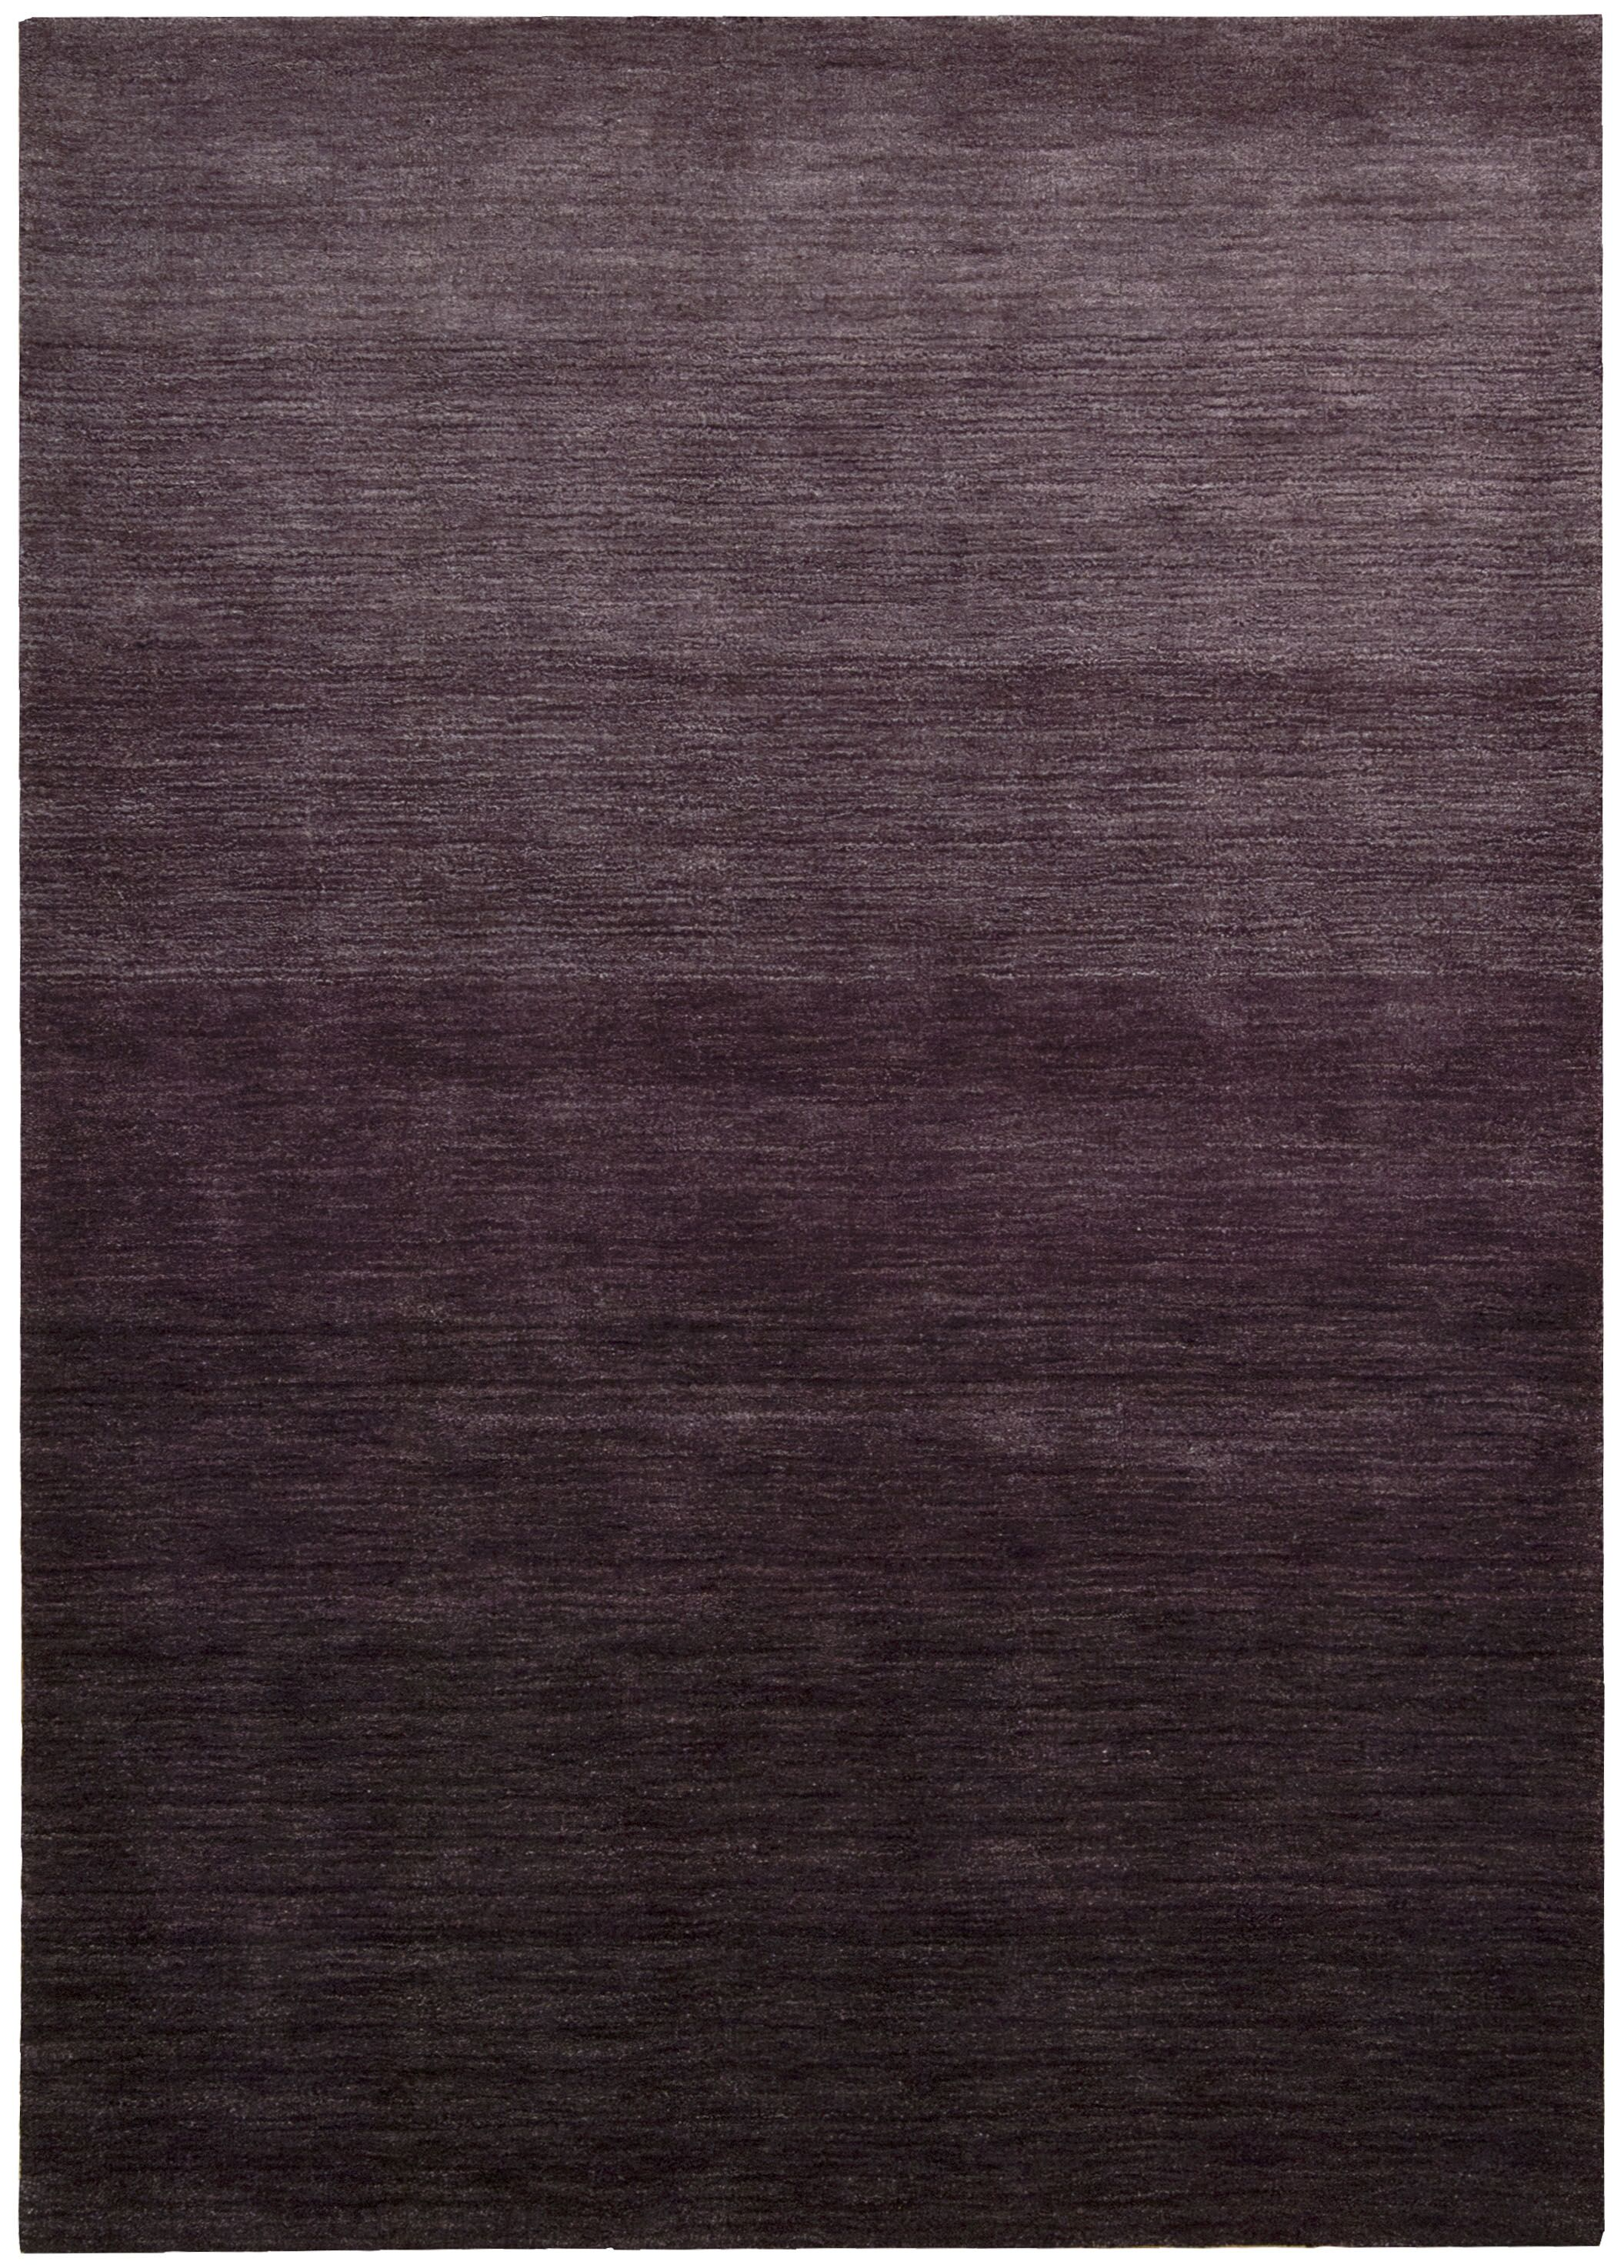 Haze Hand Woven Wool Smoke Elderberry Area Rug Rug Size: Rectangle 7'9